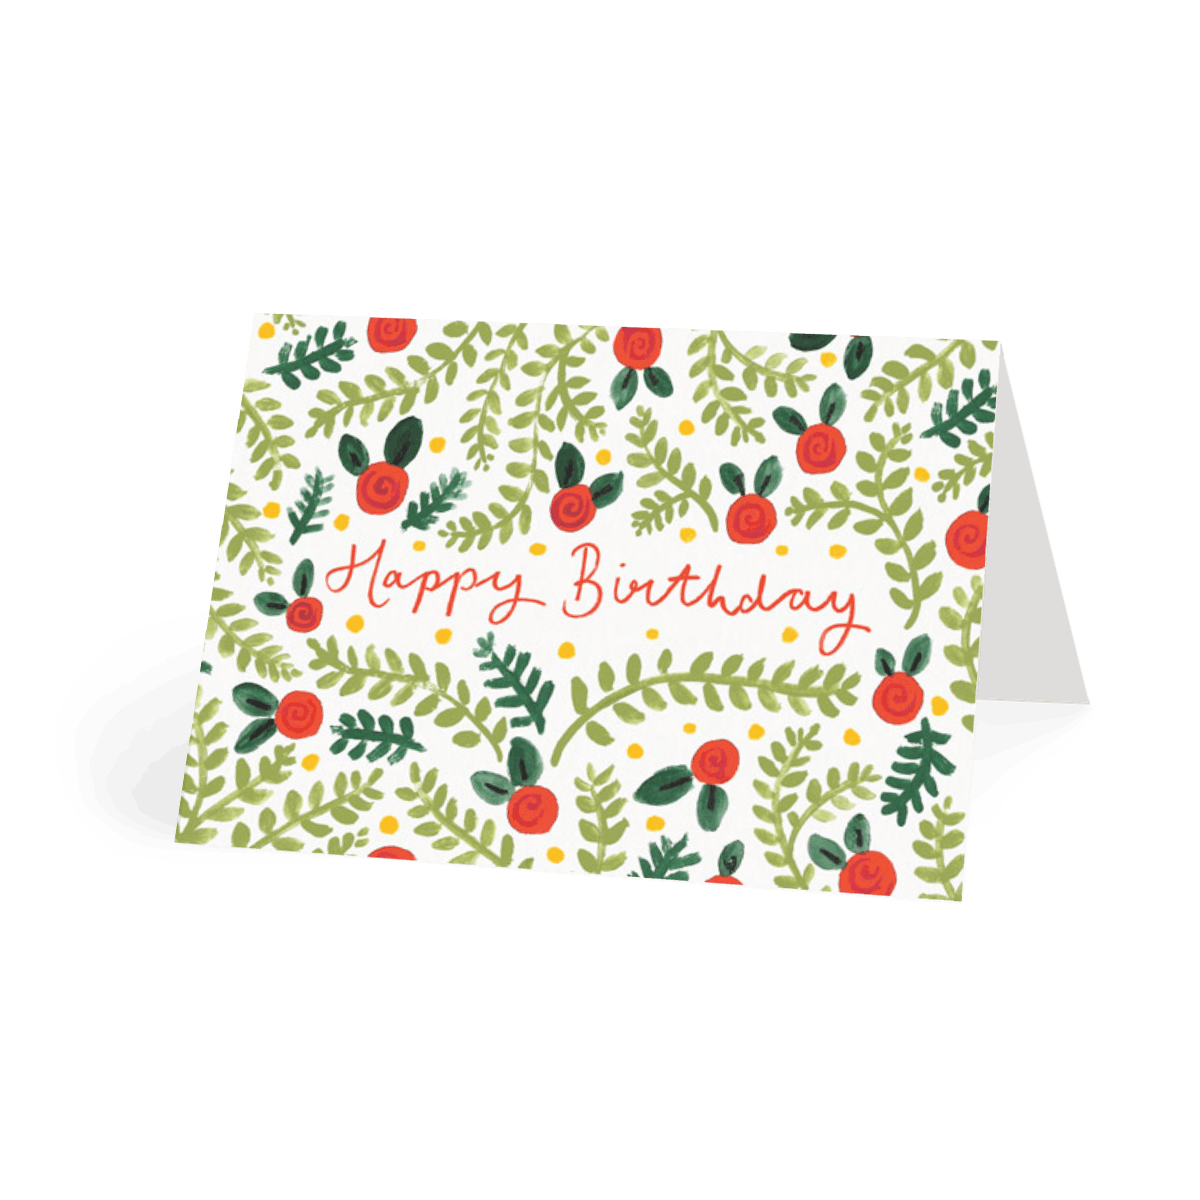 Https%3a%2f%2fwww.papier.com%2fproduct image%2f61818%2f14%2fhappy birthday florals 14675 front 1547746740.png?ixlib=rb 1.1